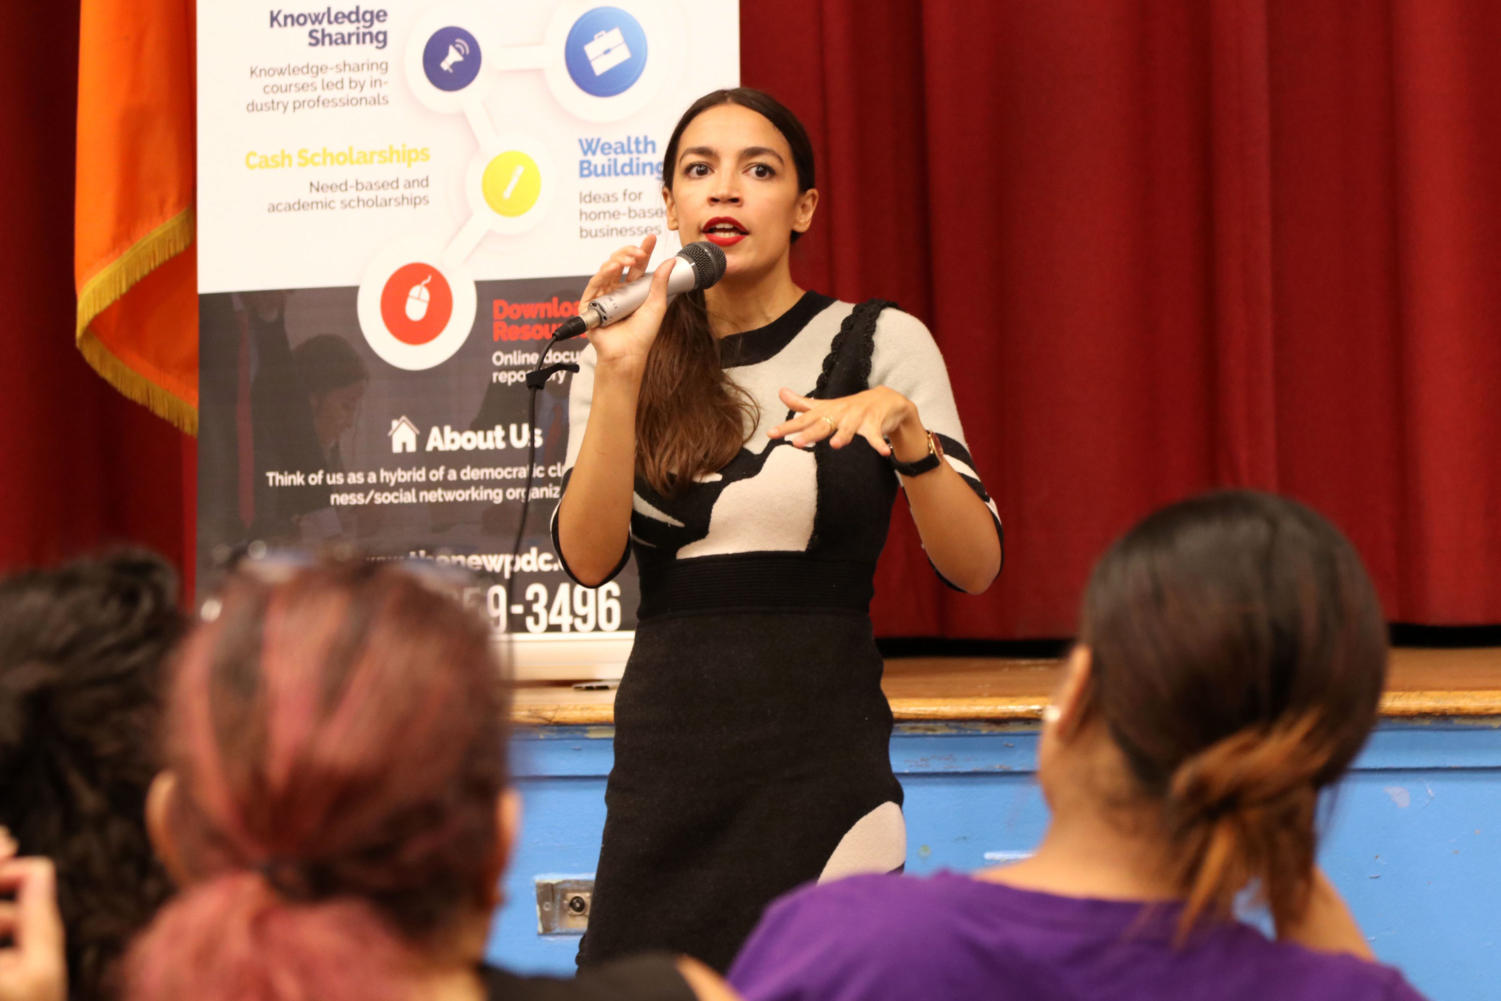 Democratic primary winner Alexandria Ocasio-Cortez, the darling of progressive U.S. politics, takes questions from constituents in the Parkchester section of The Bronx on August 8, 2018. (G. Ronald Lopez/Zuma Press/TNS)